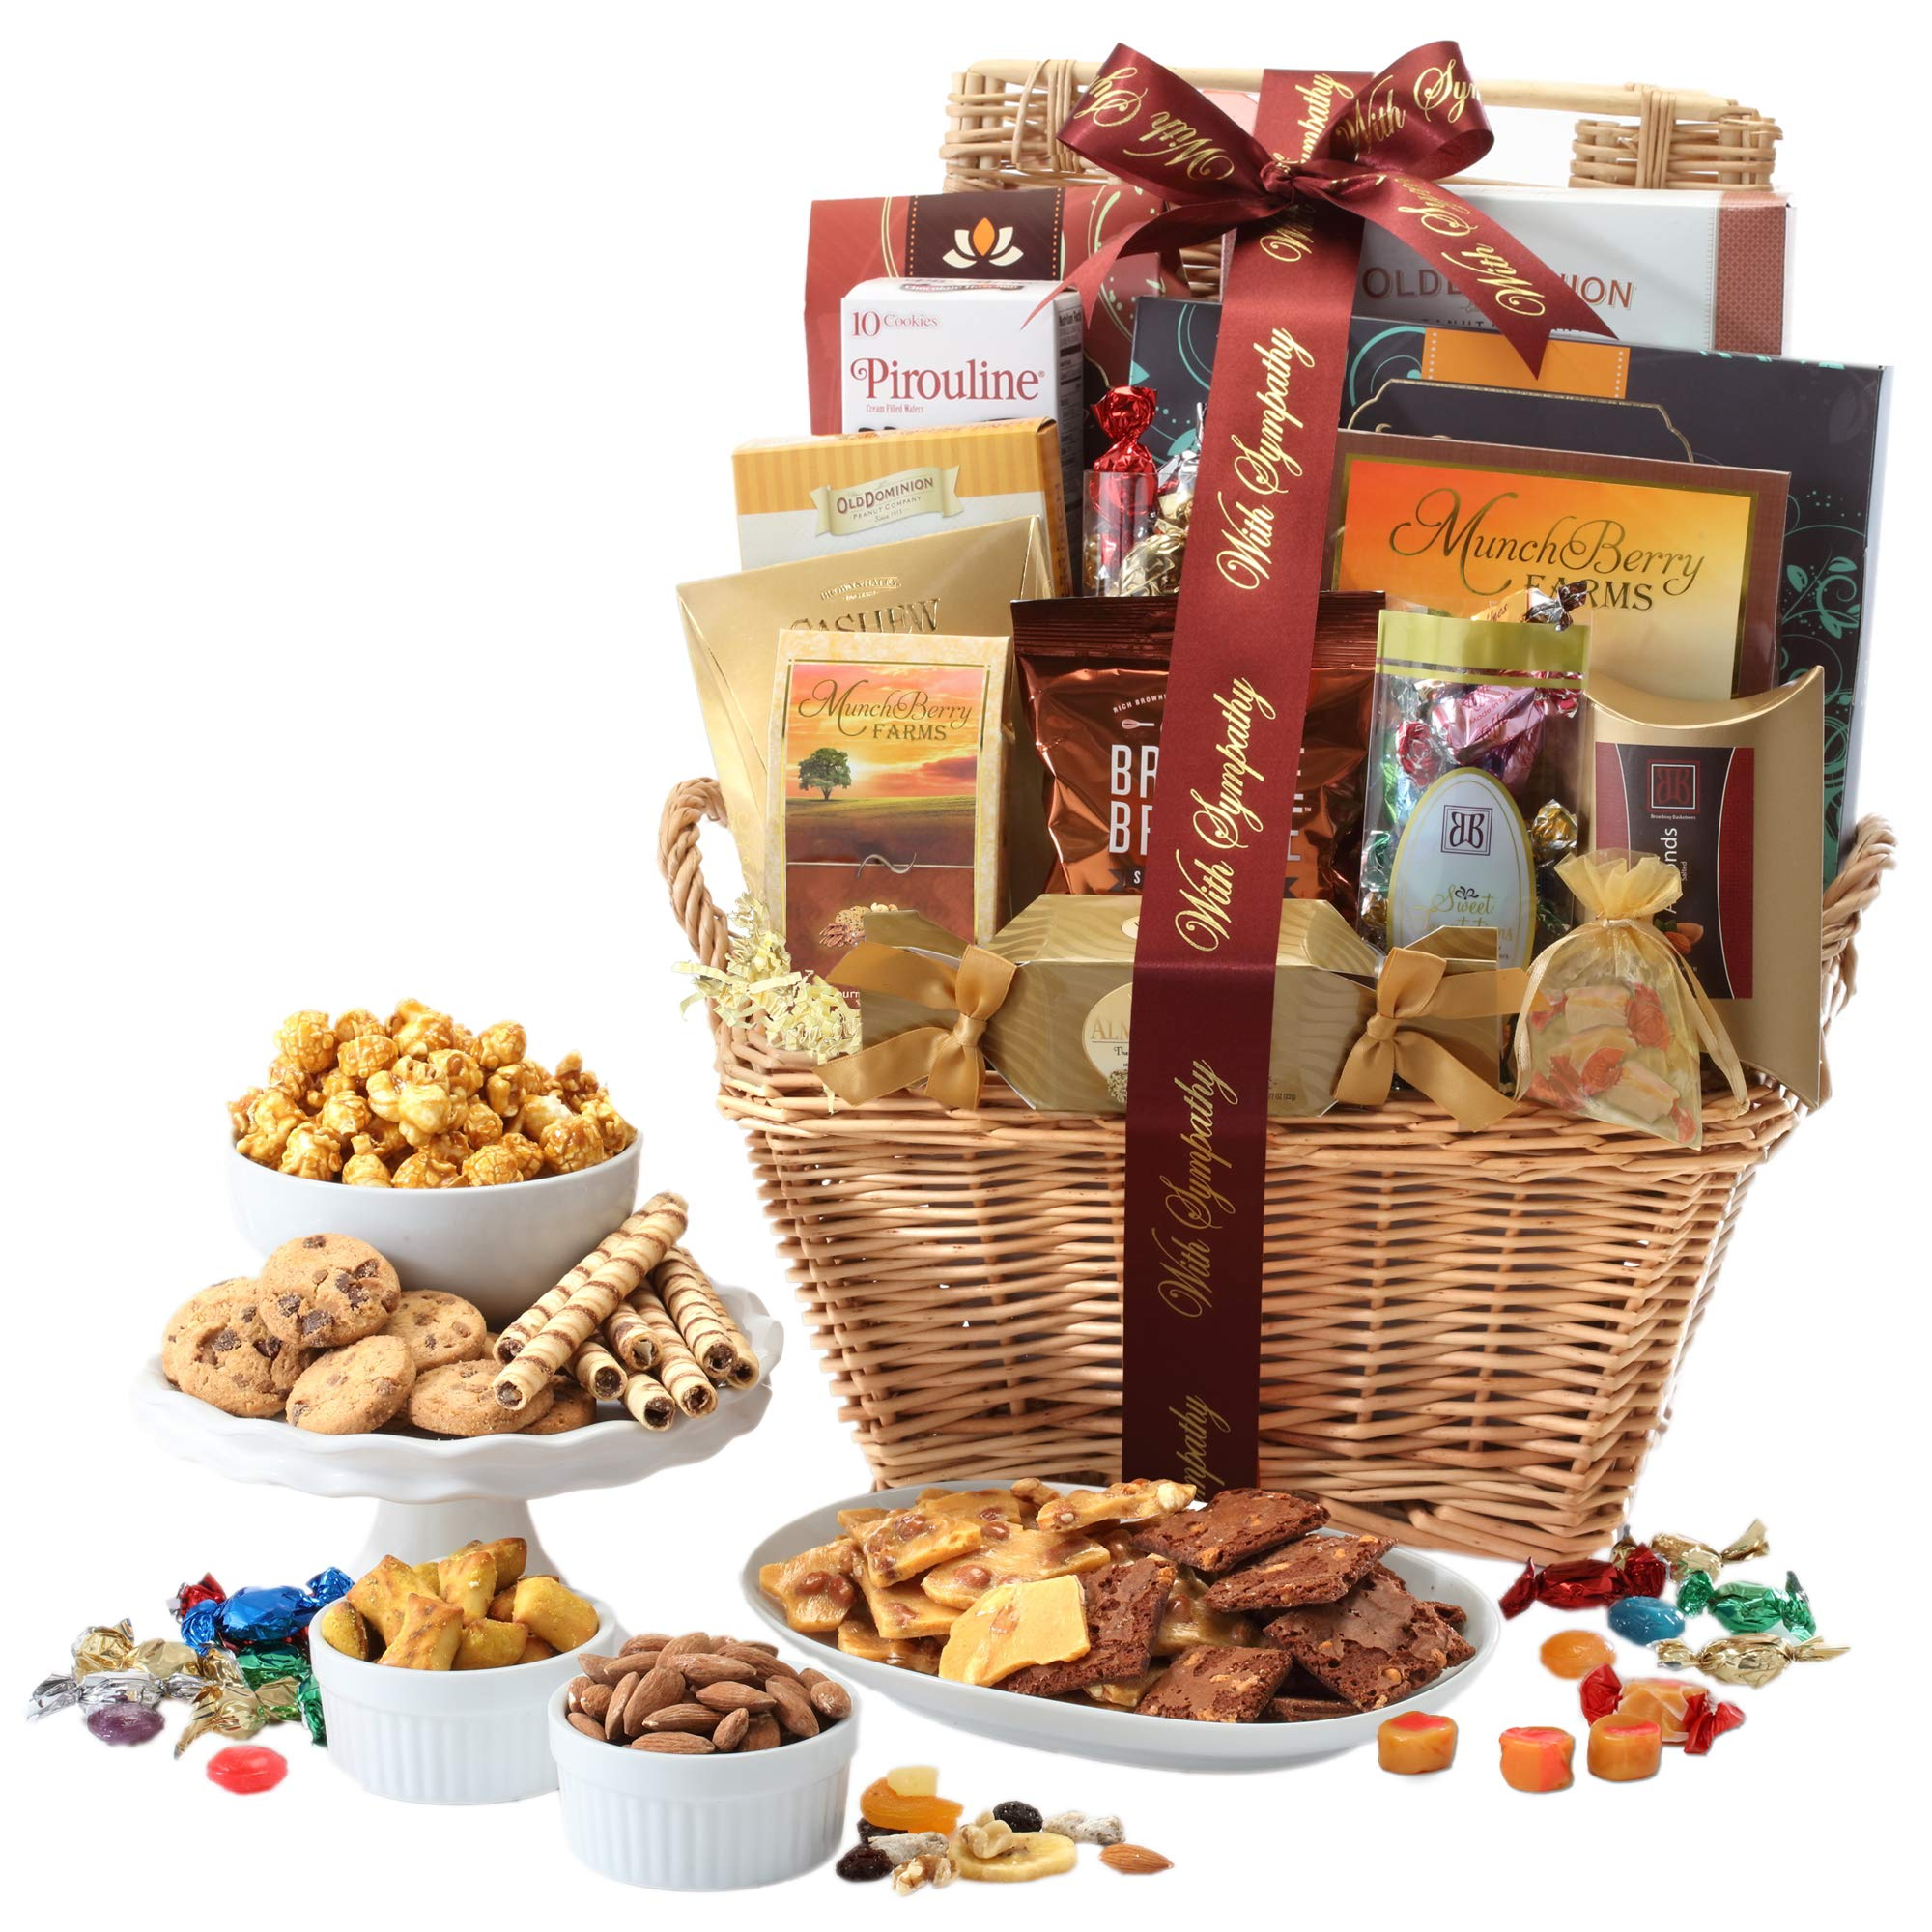 Broadway Basketeers with Sympathy Gift Basket Deluxe by Broadway Basketeers (Image #1)